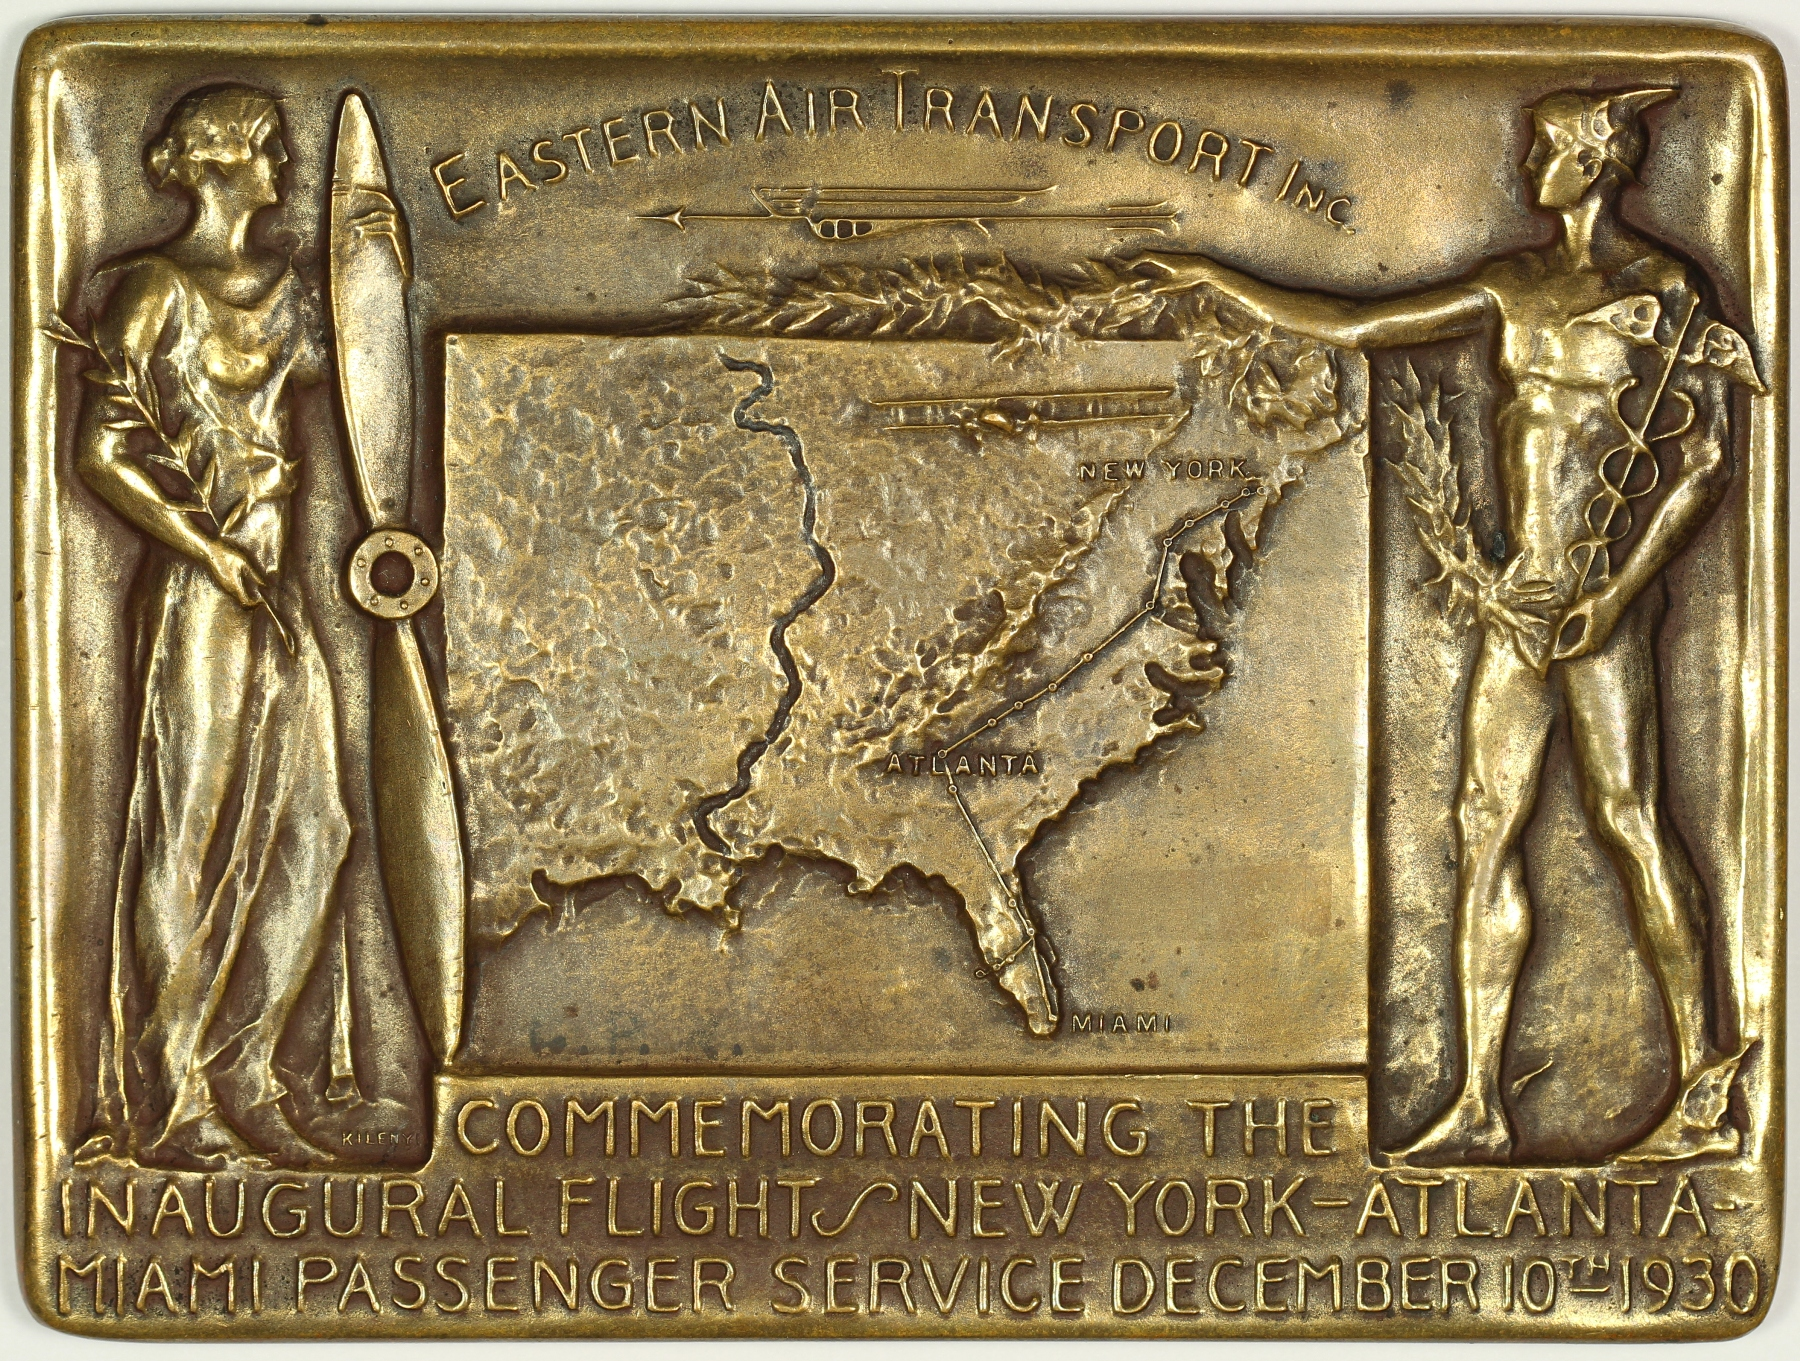 1930 Eastern Air Transport, Inc. Commemorative Bronze Medal 101mm x 76mm